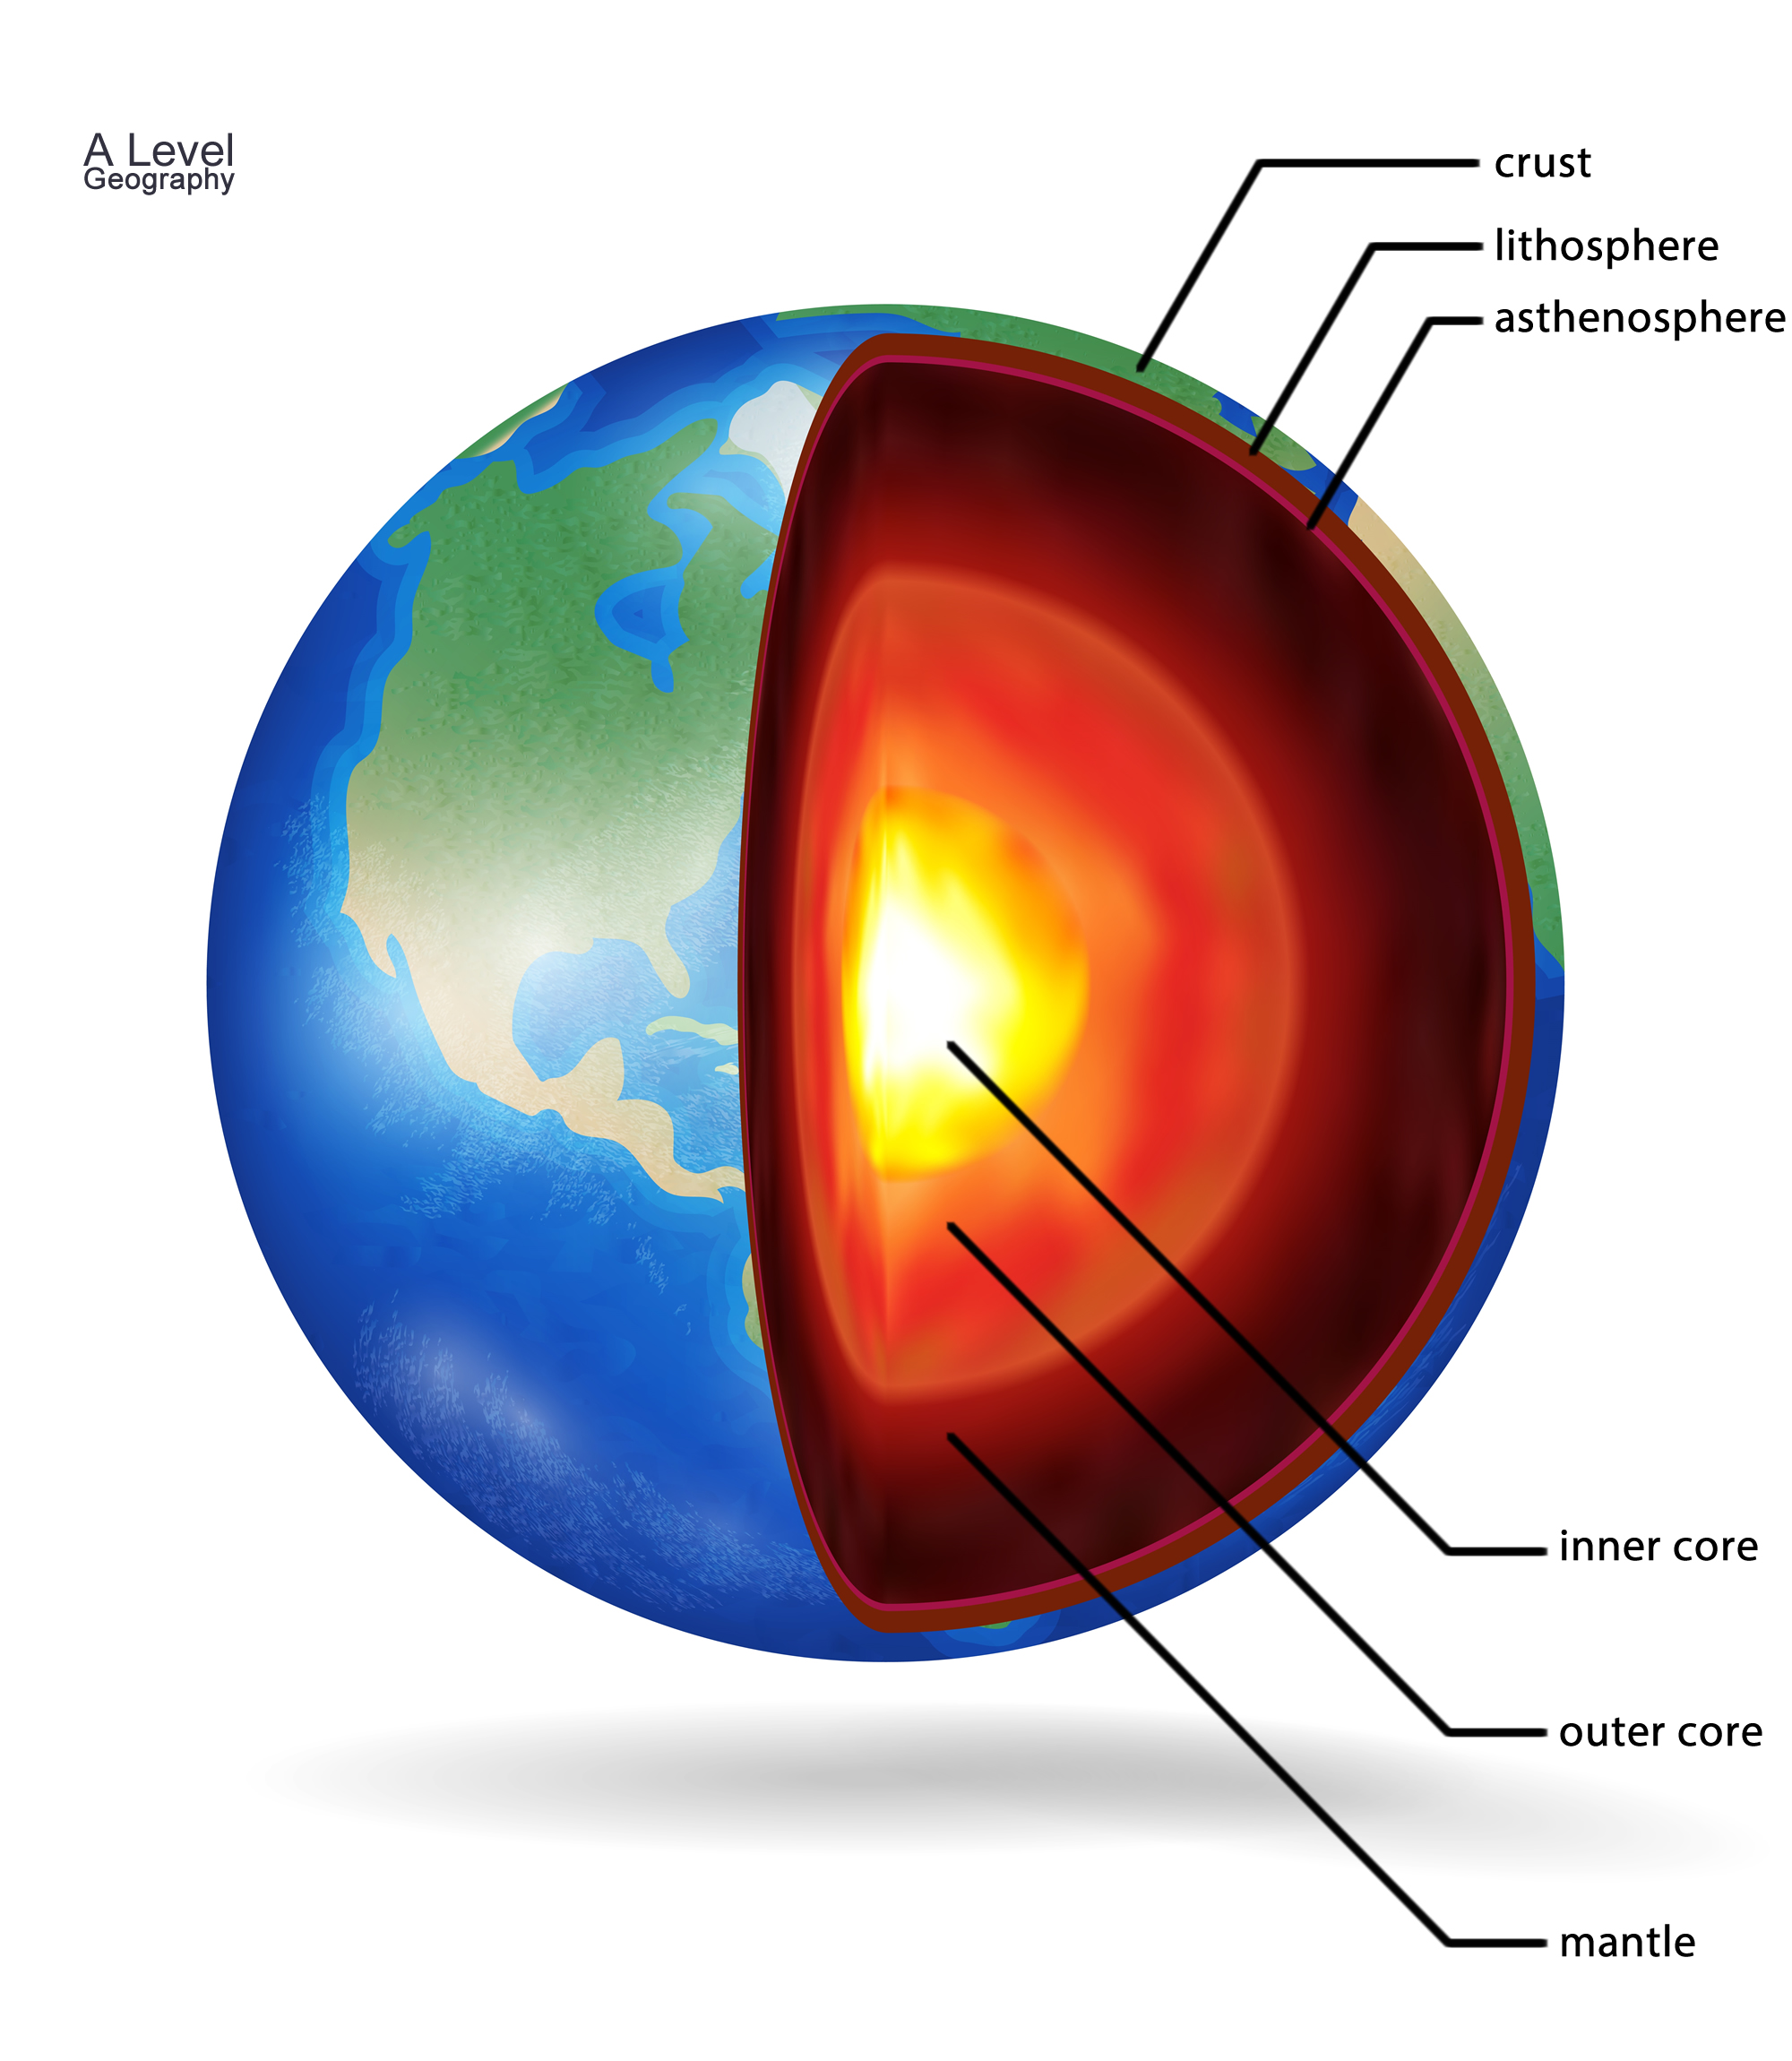 structure of the earth a level geography  earth crust diagram #10